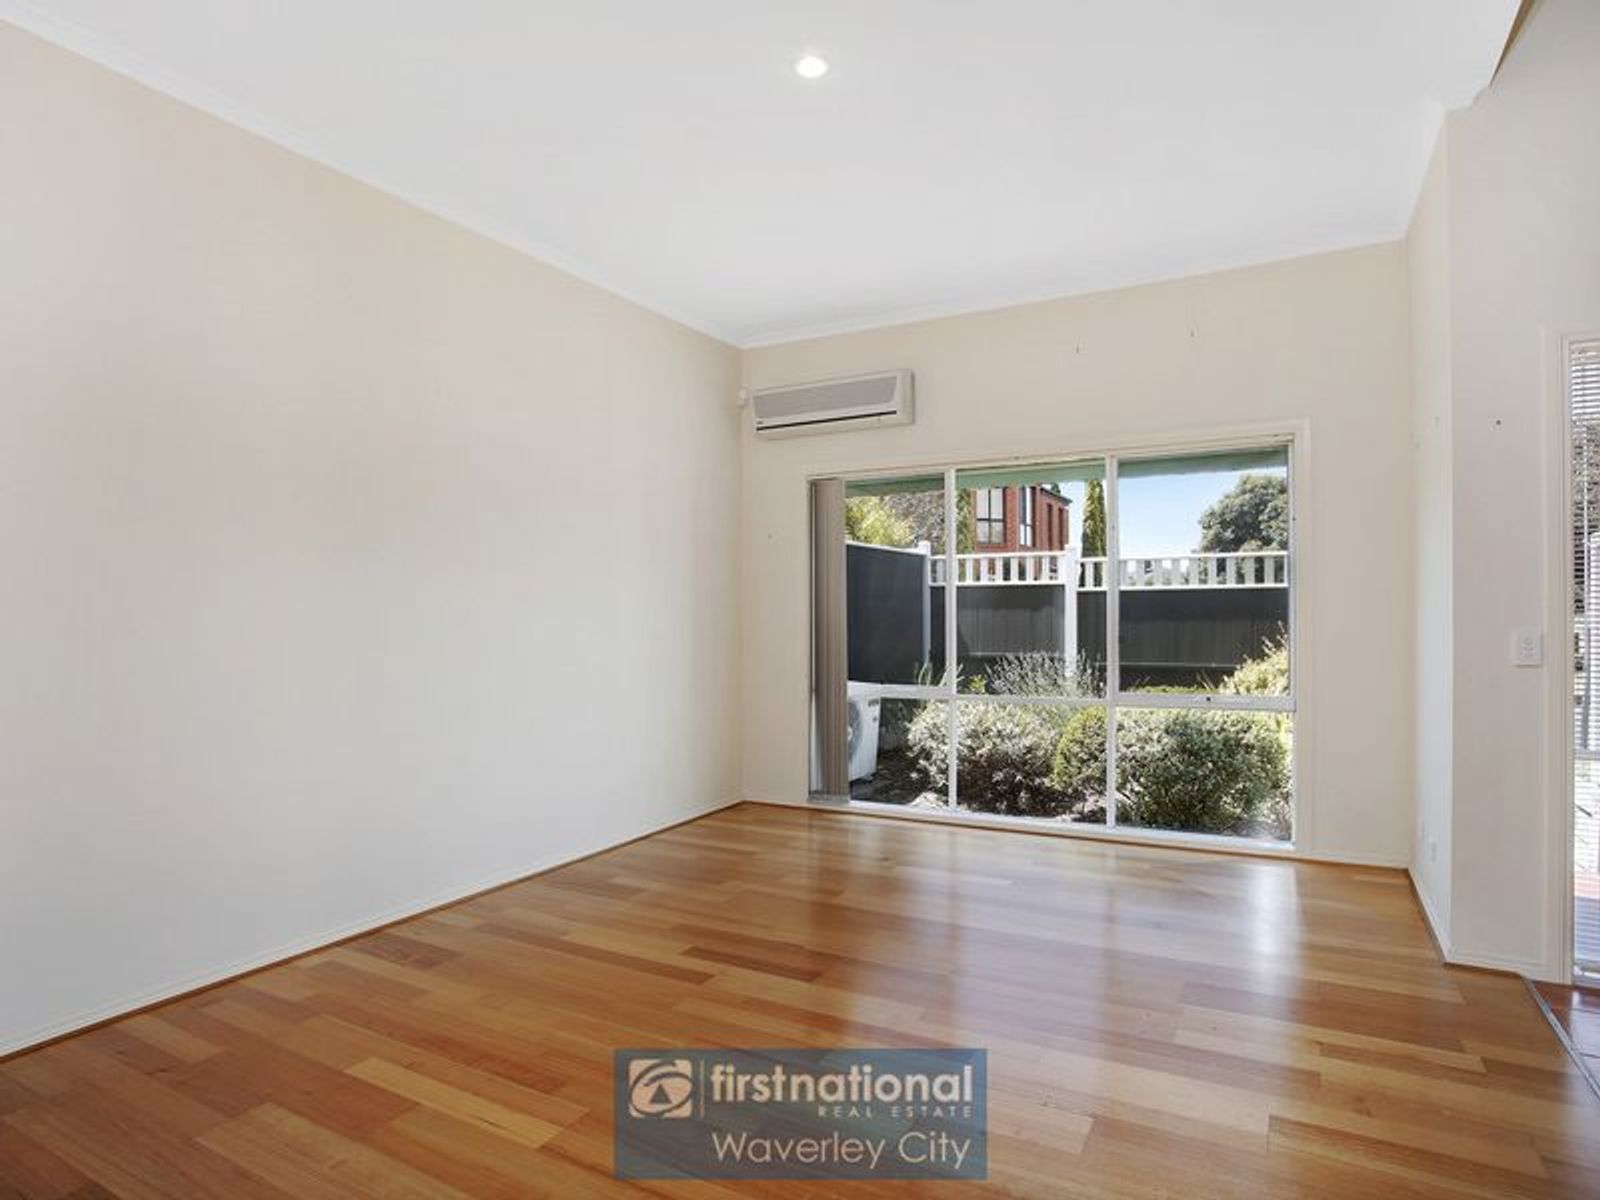 5 18 Tulloch Grove Glen Waverley Vic 3150 Australia Townhouse For Sale Fn First National Real Estate Waverley City